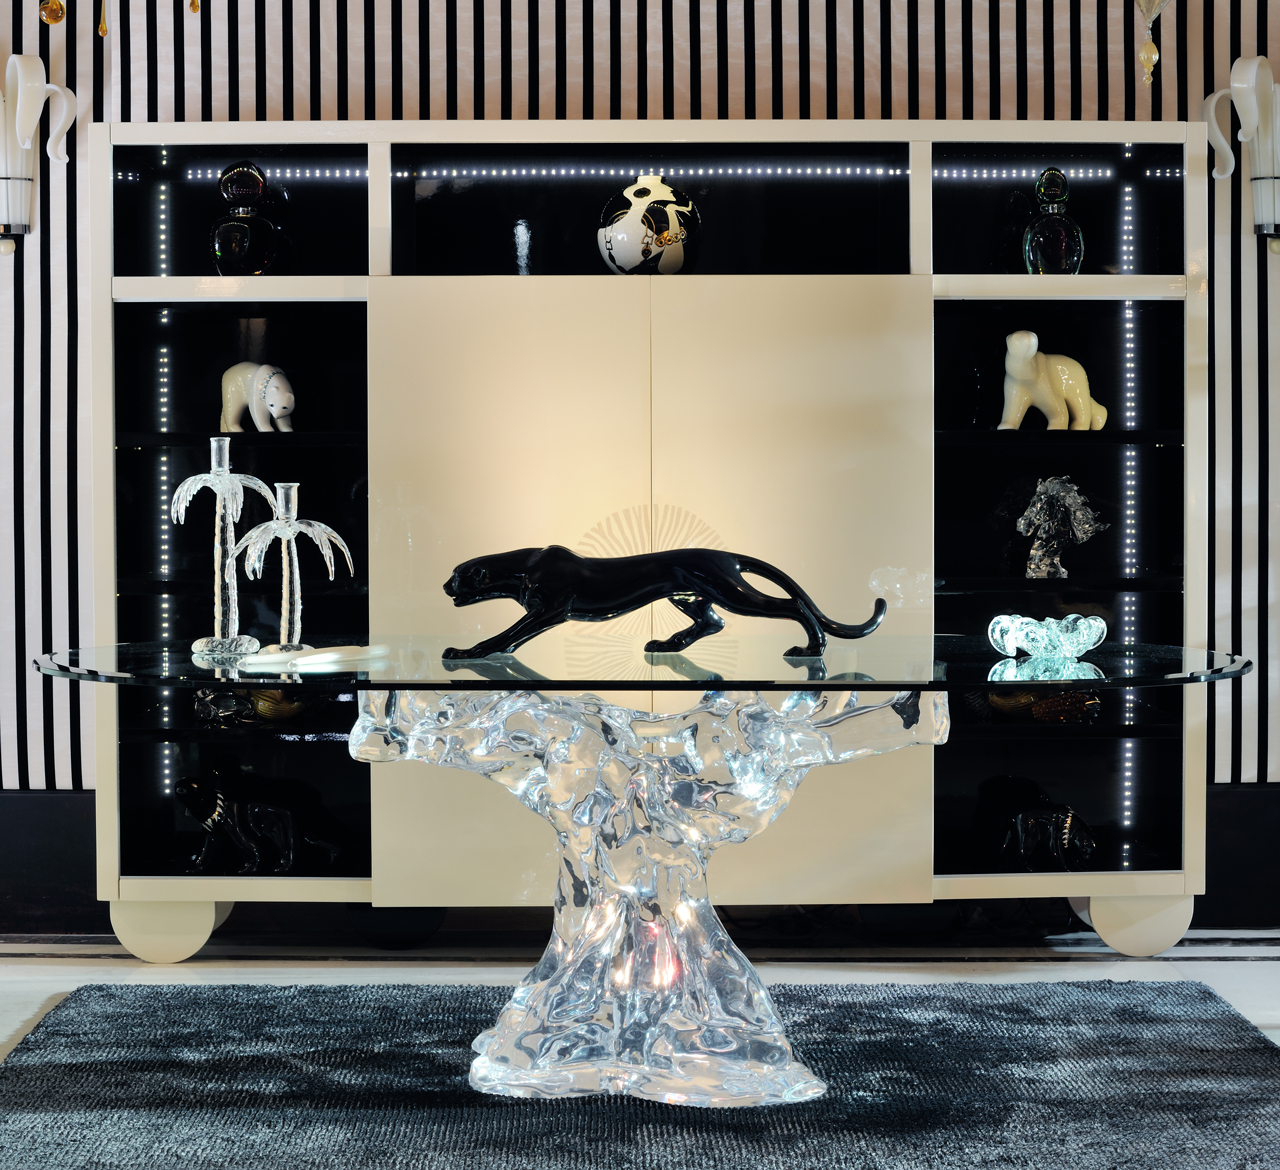 Luxury furniture France -Luxury dining table- cristal acrylic, méthacrylate-meuble art deco Las Vegas